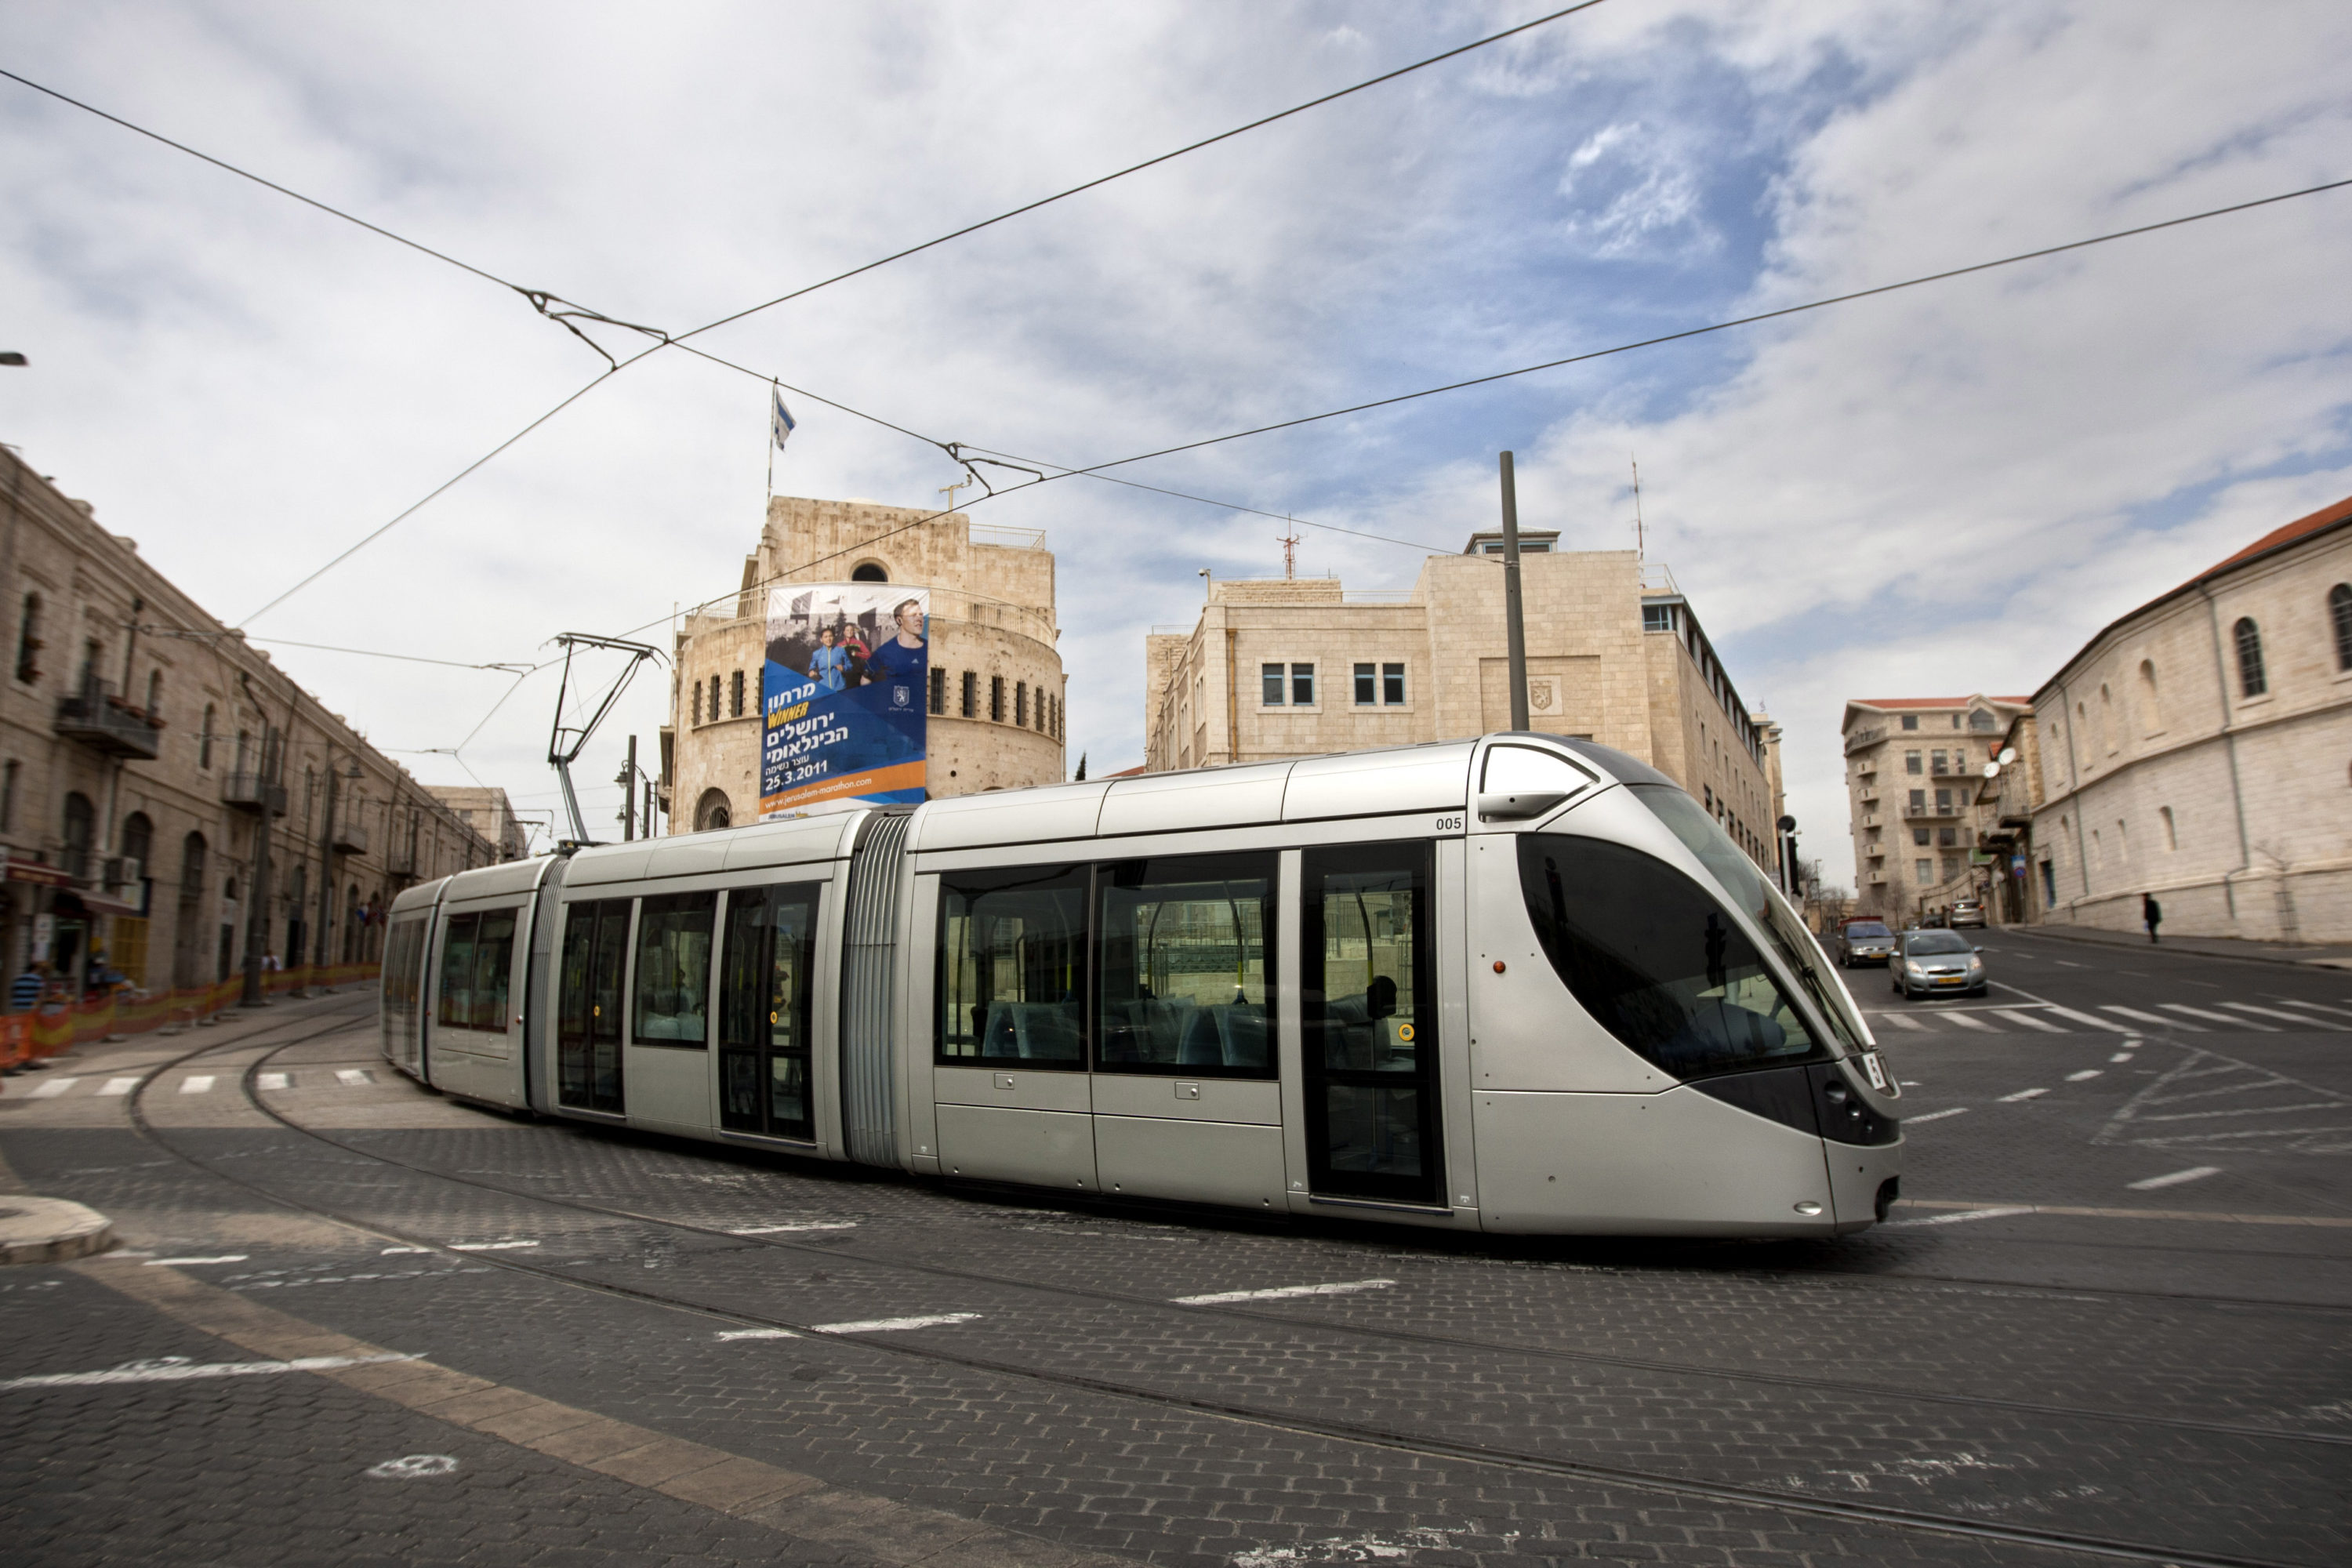 In this photo taken on Sunday, March 20, 2011, the new light rail is seen during trial runs in Jerusalem. After years of delays, Jerusalem's historic light rail is set to make its maiden voyage, completing a journey that has circumvented ancient bones, archaeological treasures, budget overruns and political potholes that have repeatedly threatened to derail the project. For its proponents, the rail system is a last-ditch effort to modernize one of the world's oldest cities. (AP Photo/Sebastian Scheiner)